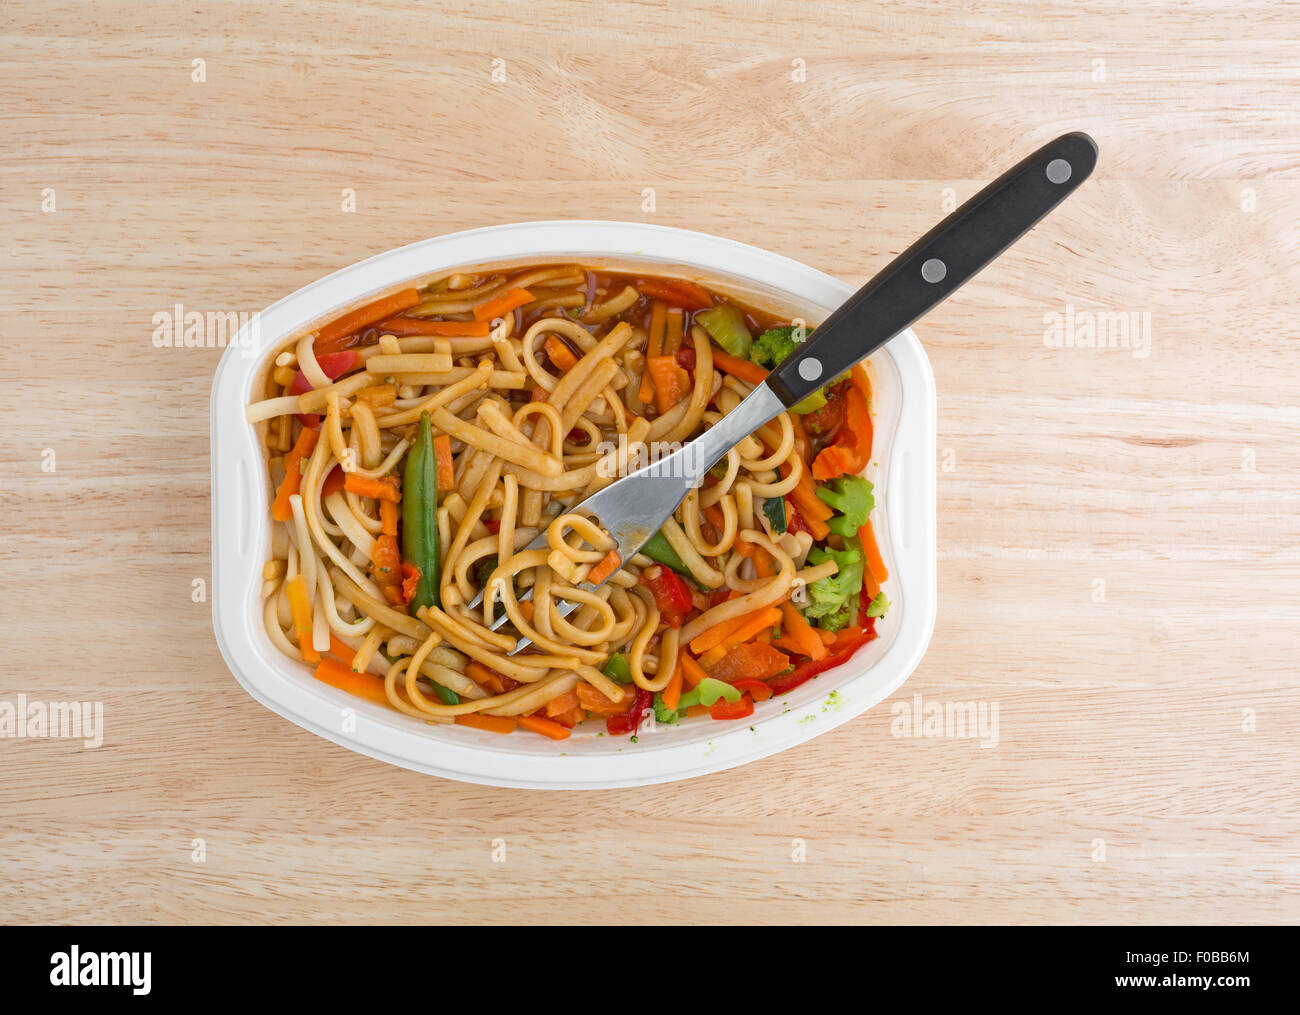 Top view of a TV dinner of noodles and vegetables in a white tray with a fork on a wood table top. - Stock Image